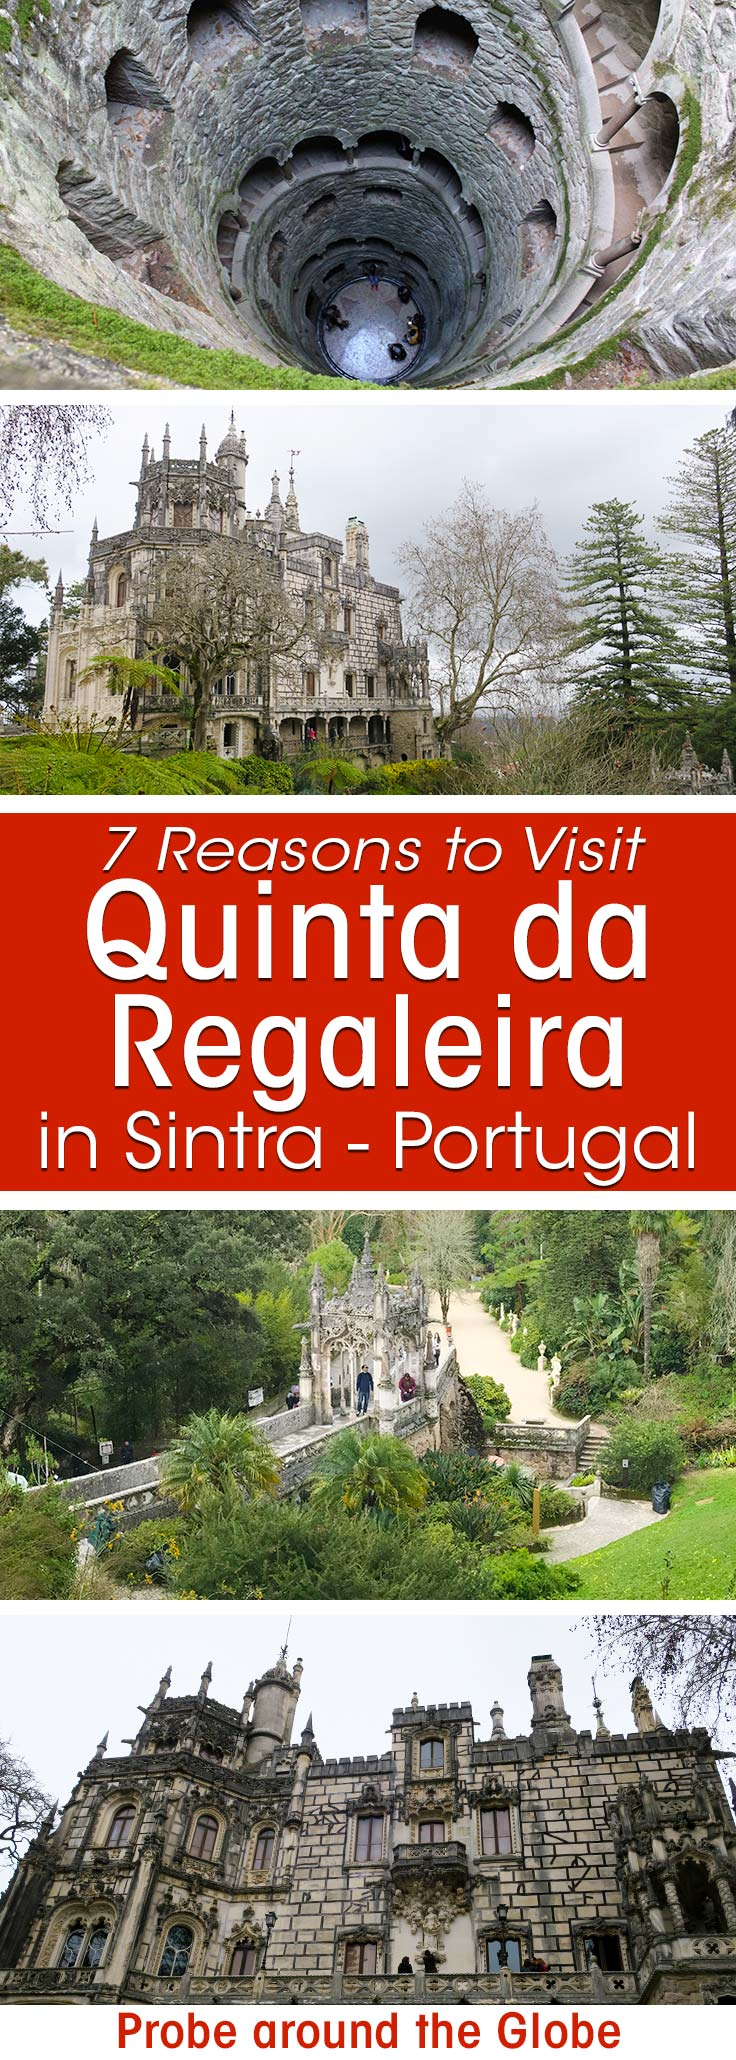 colourful images of Quinta da Regaleira Palace in Sintra Portugal showing the Initiation Well and the palace. With overlay text stating 7 reasons to visit Quinta da Regaleira in Sintra Portugal Probe around the Globe